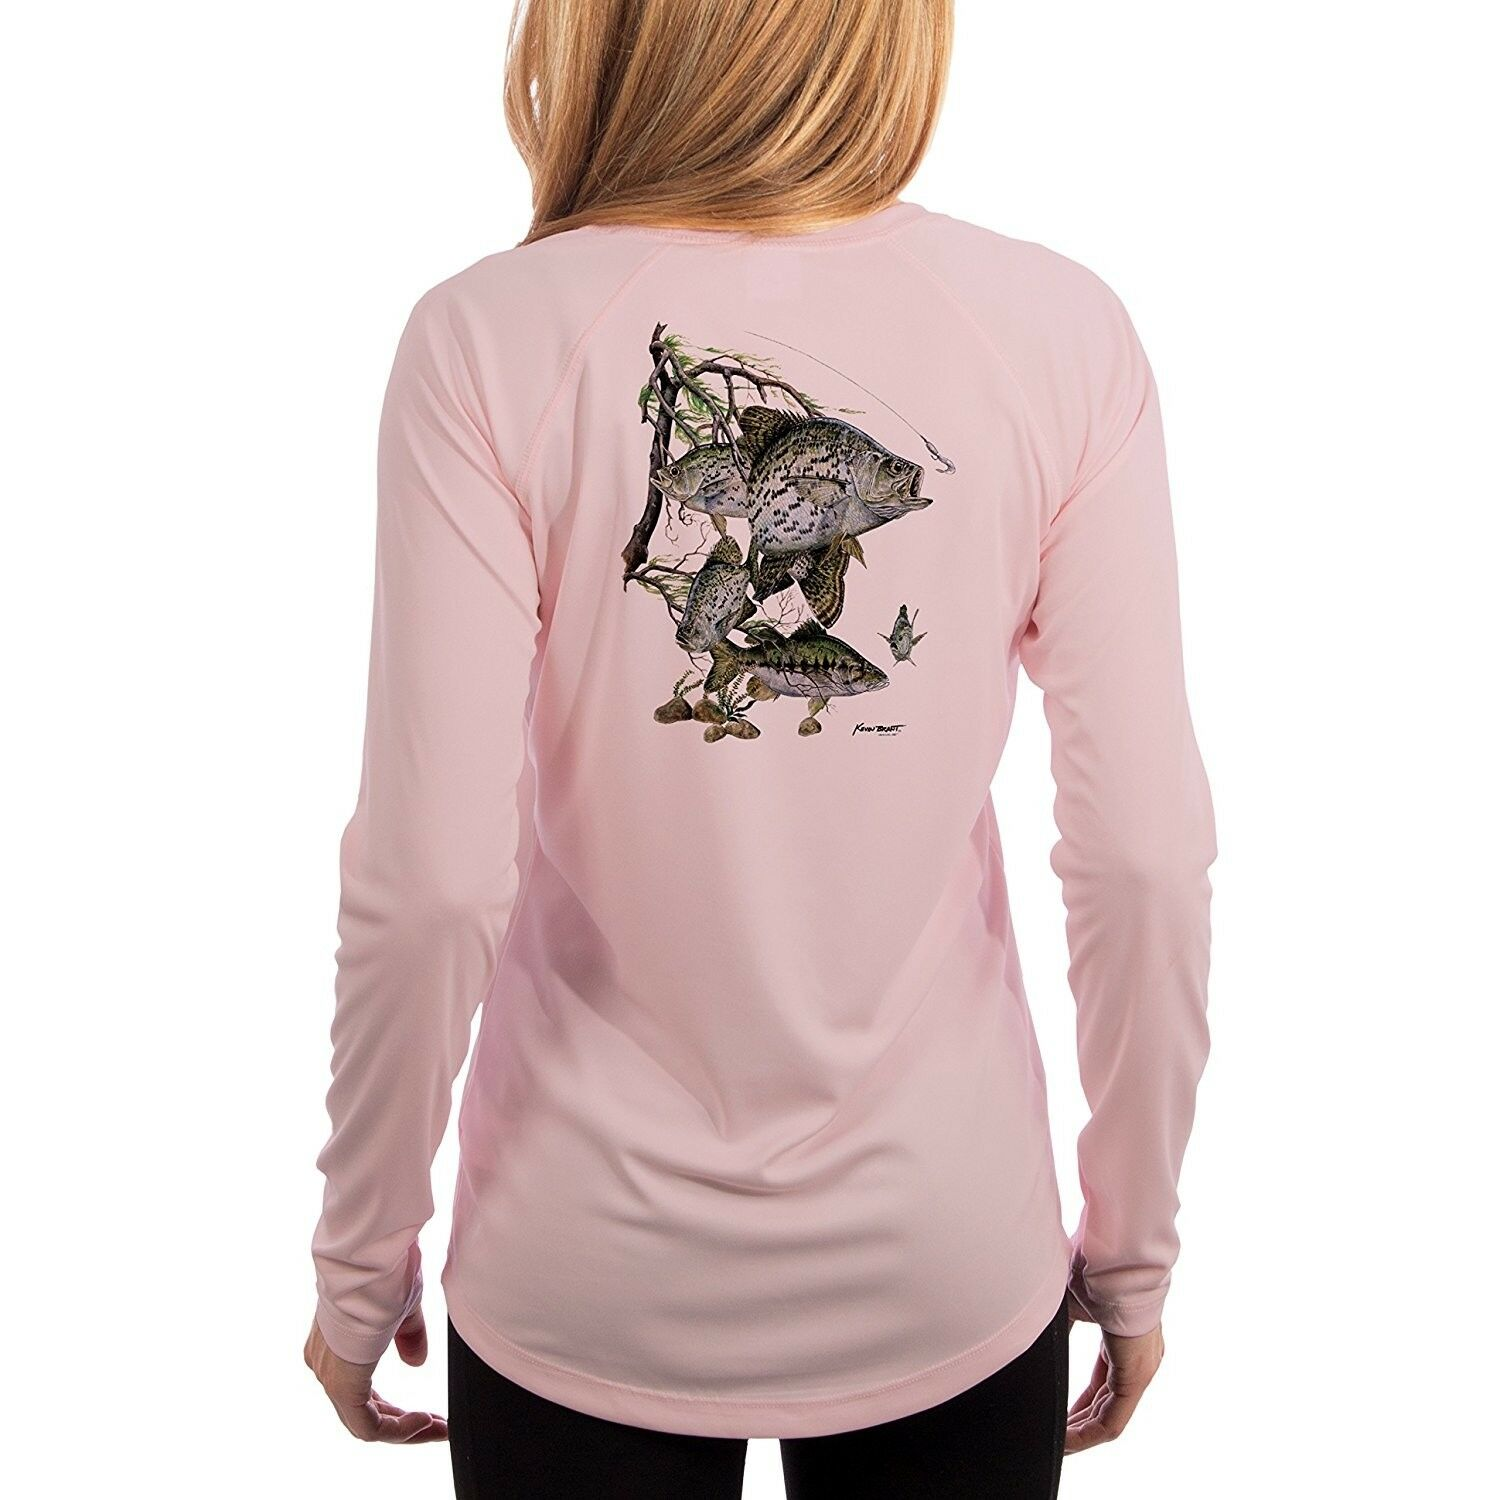 KEVIN BRANT Crappie Women's UPF 50+ Performance T-shirt